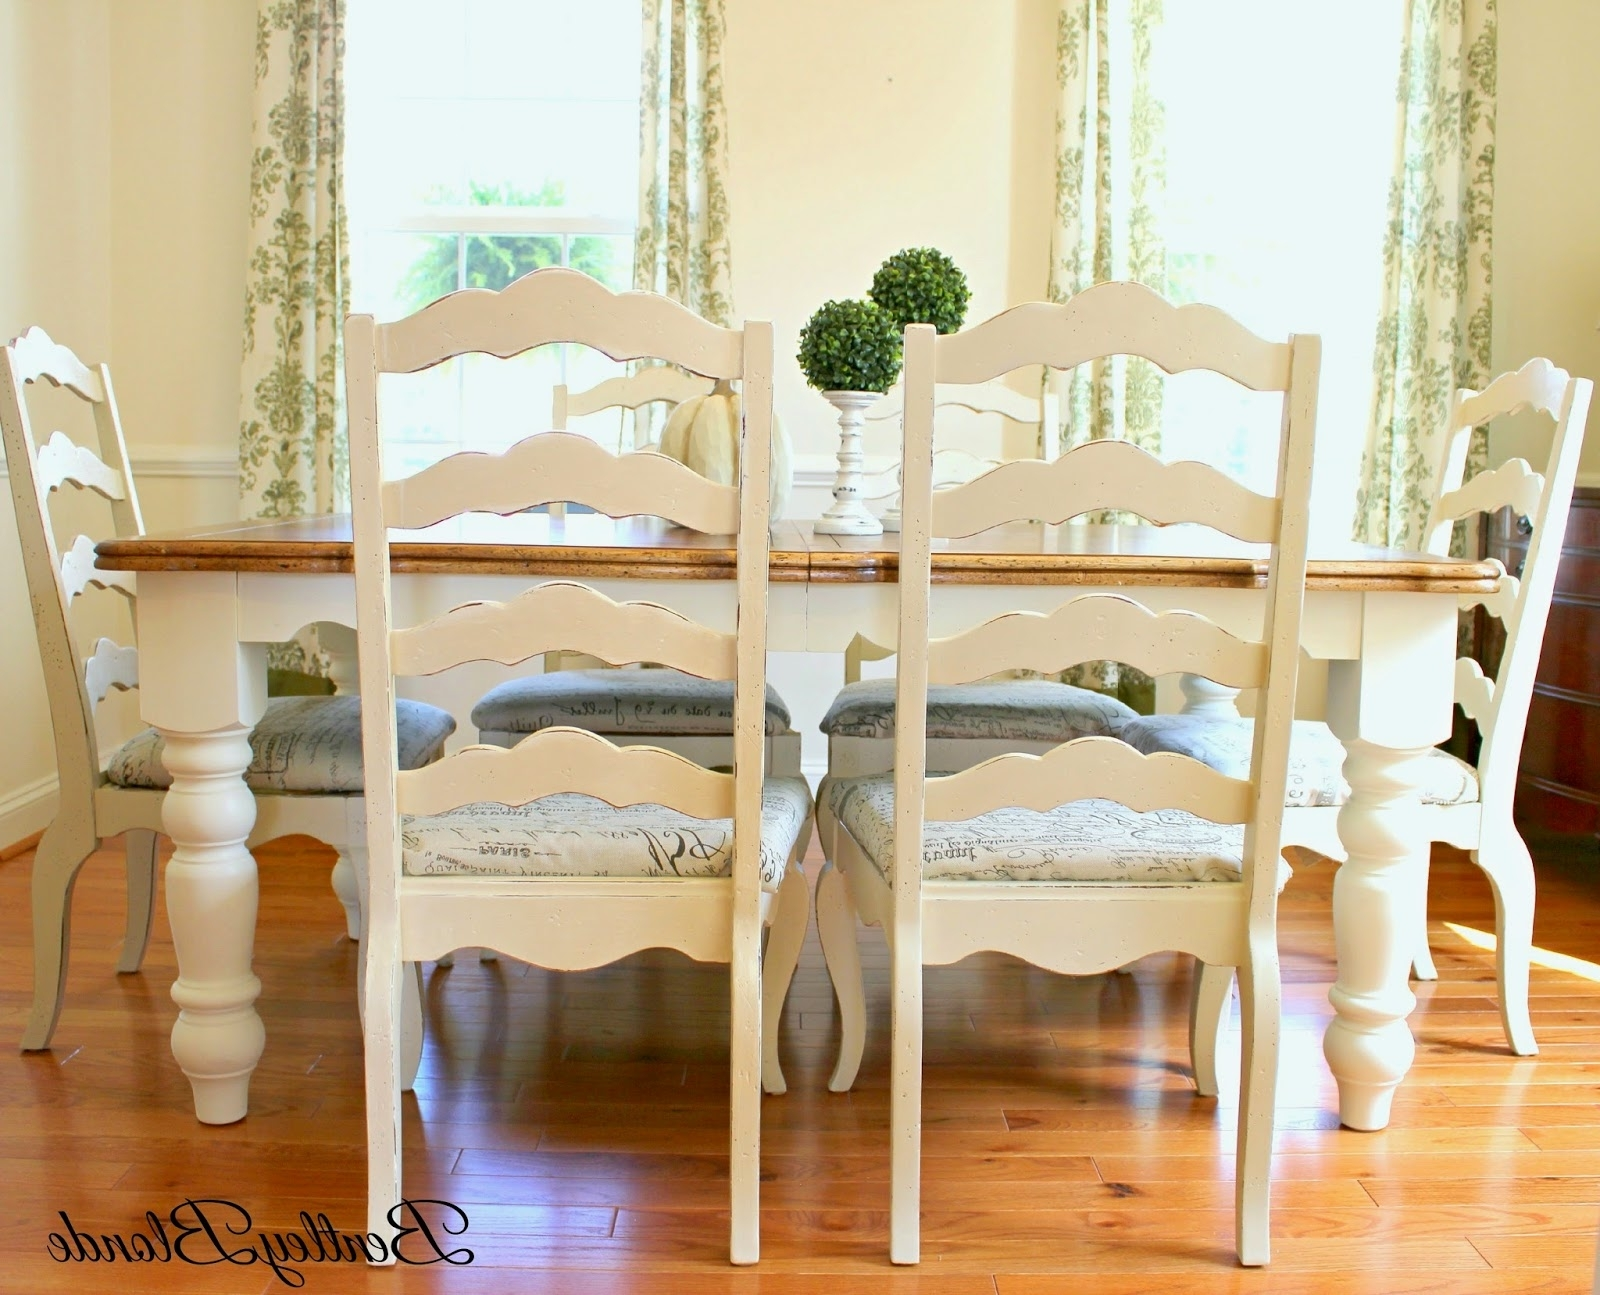 Widely Used Bentleyblonde: Diy Farmhouse Table & Dining Set Makeover With Annie With Ivory Painted Dining Tables (View 24 of 25)